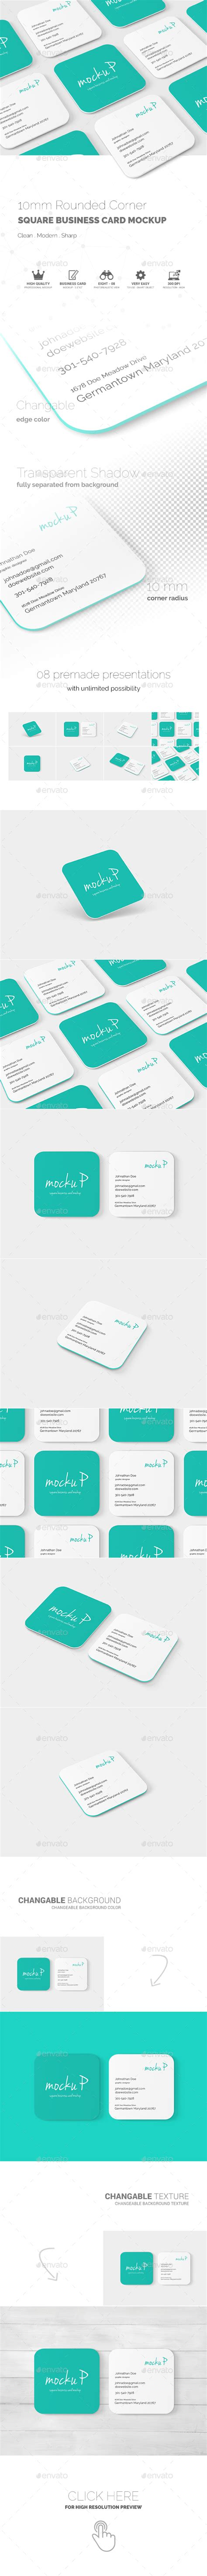 square business cards rounded edges square rounded corner business card mock up by toasin